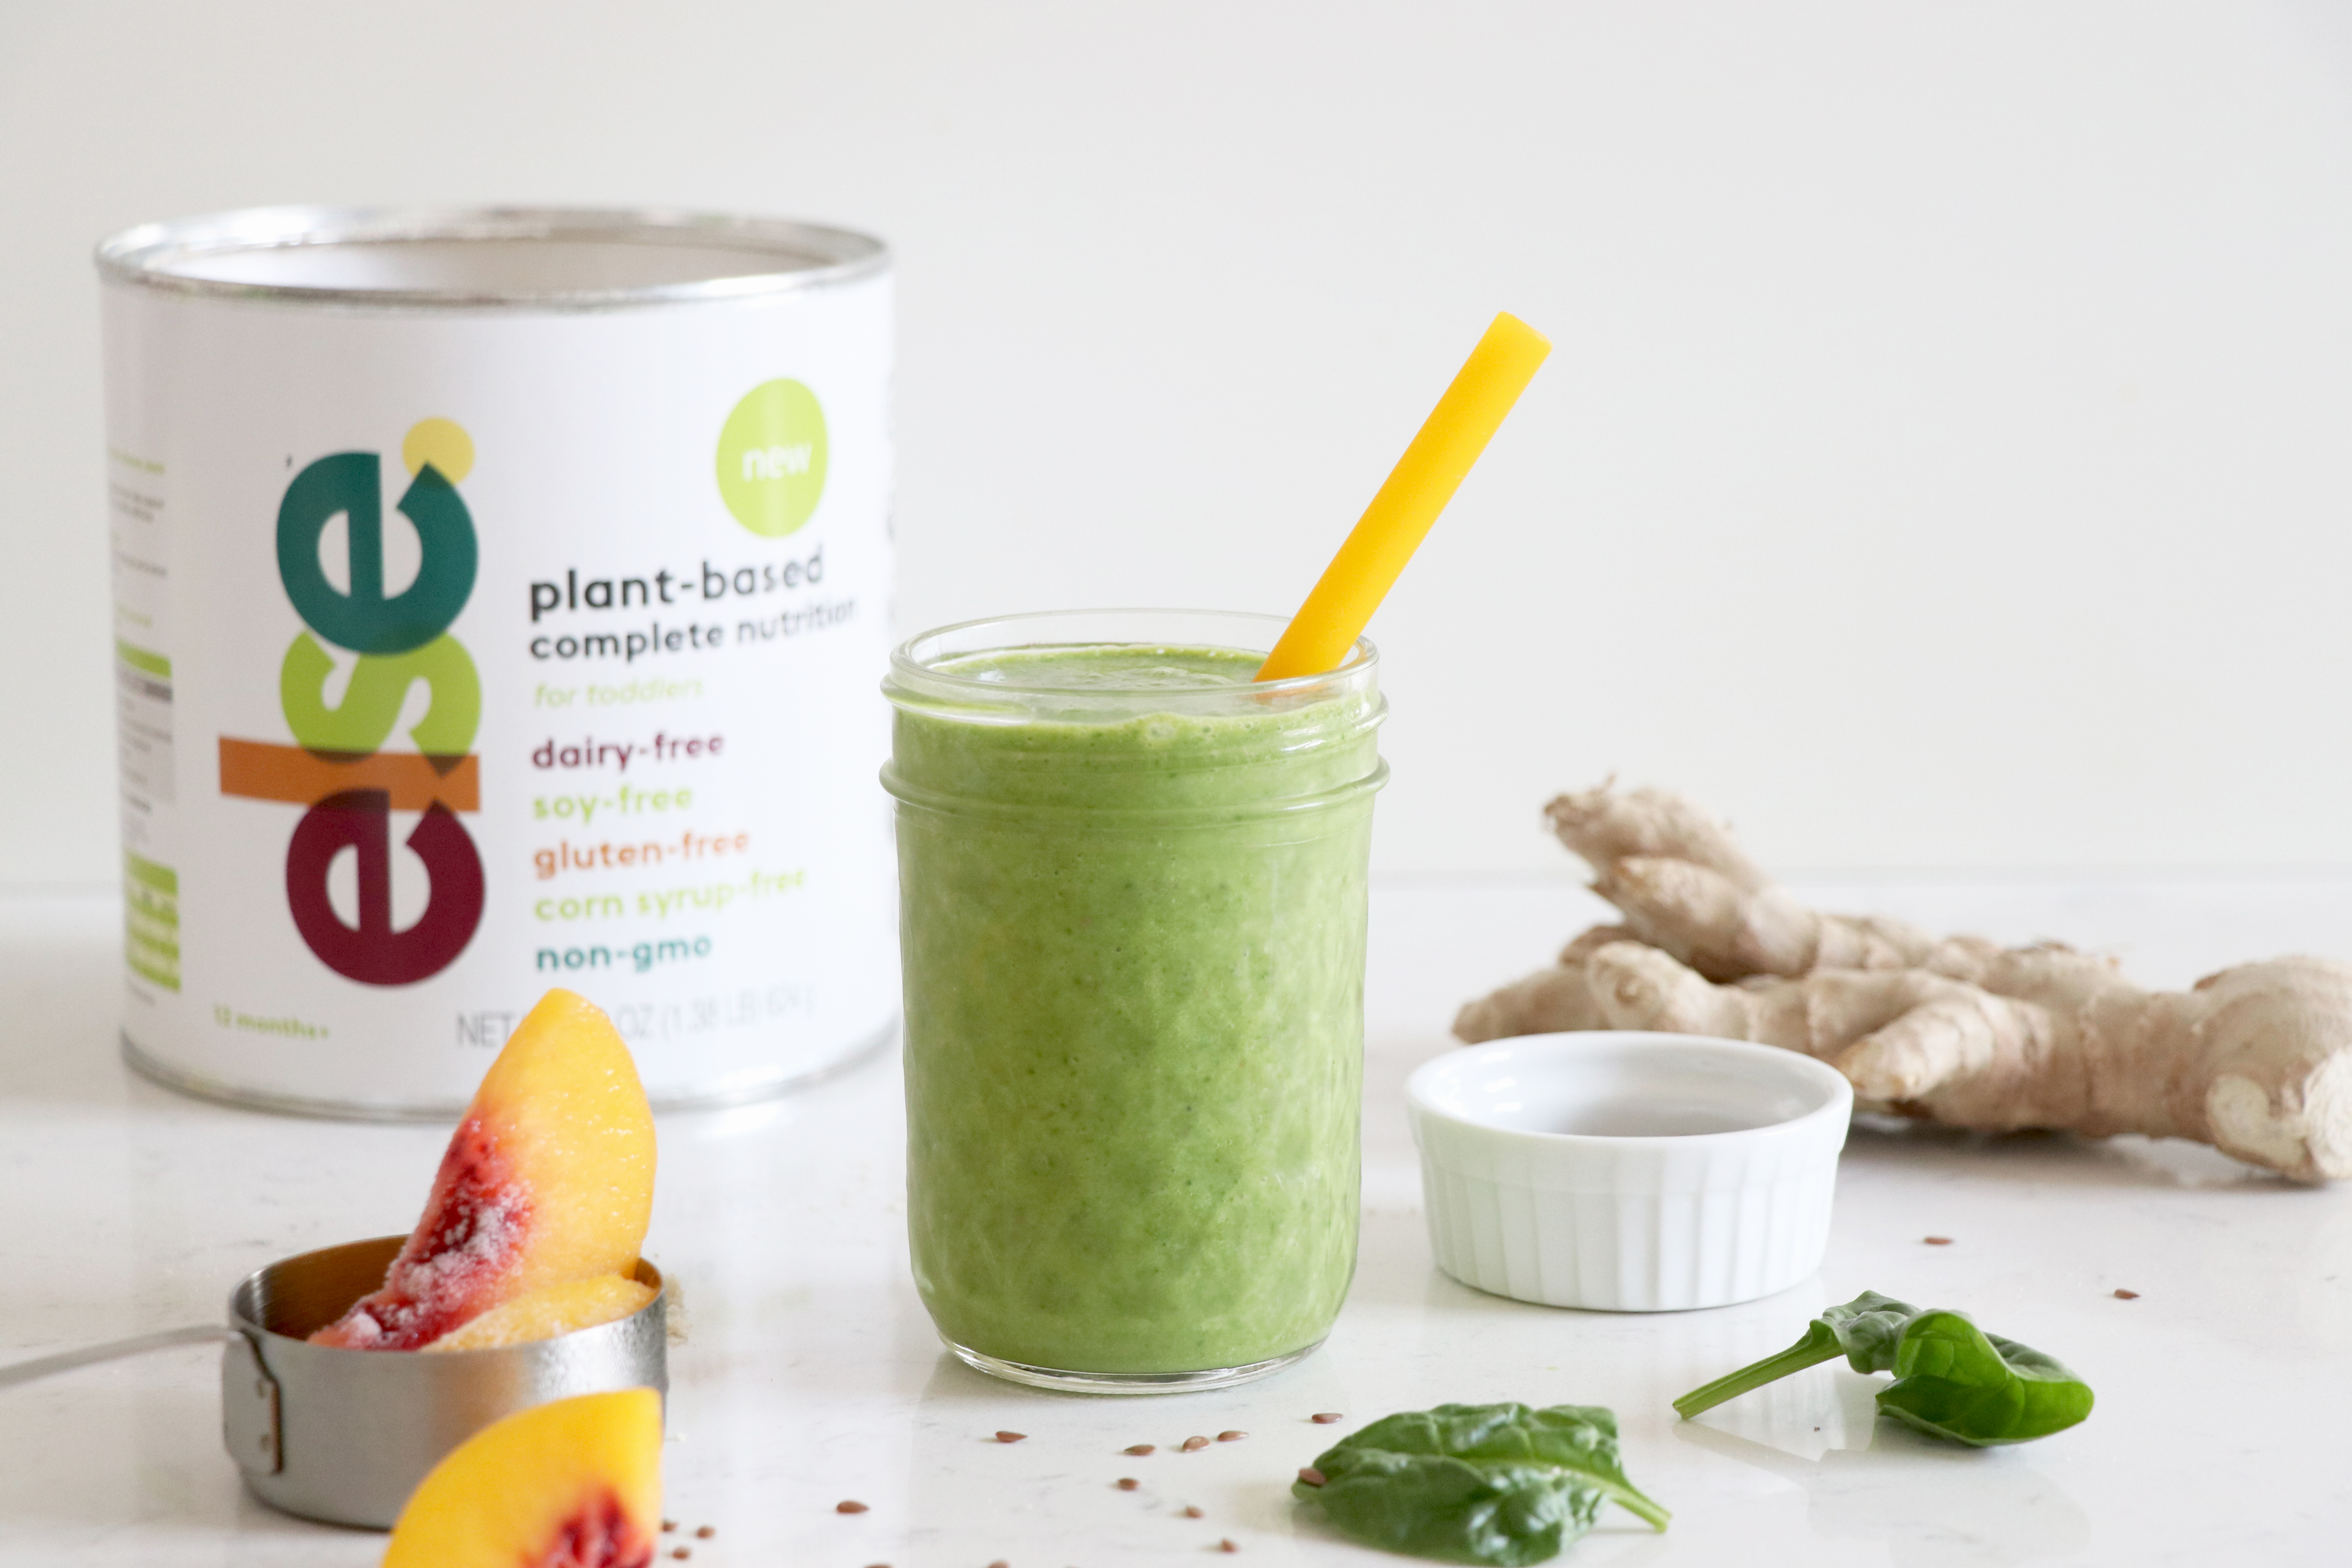 Green smoothie with yellow straw and container of complete nutrition for kids.